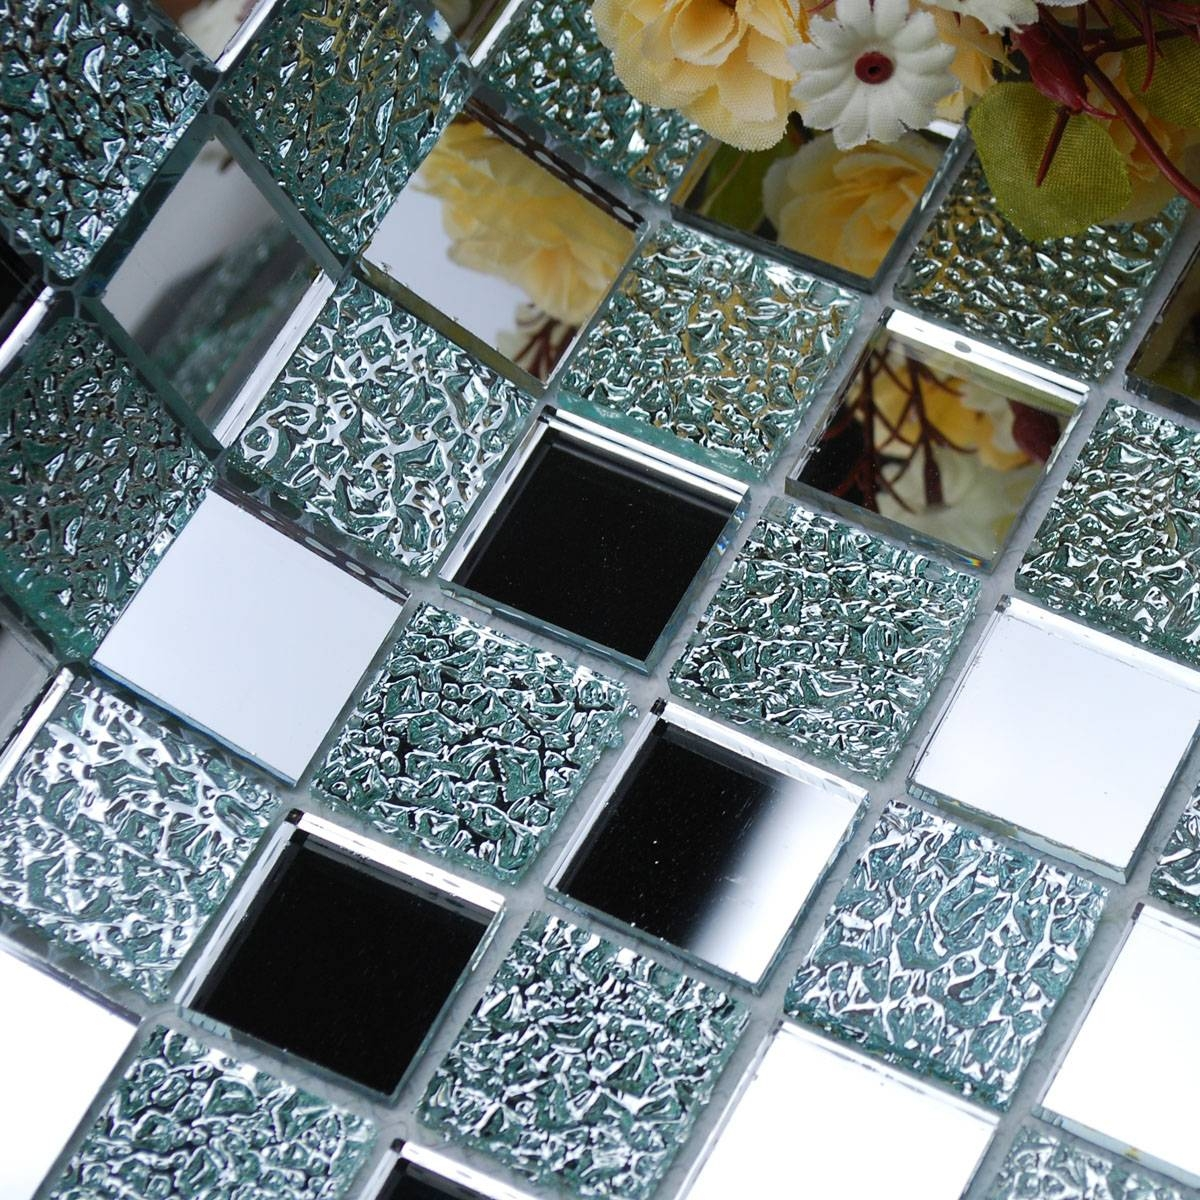 Wholesale Mirror Tile Squares Blue Bathroom Mirrored Wall Tile for Mosaic Mirrors (Image 24 of 25)